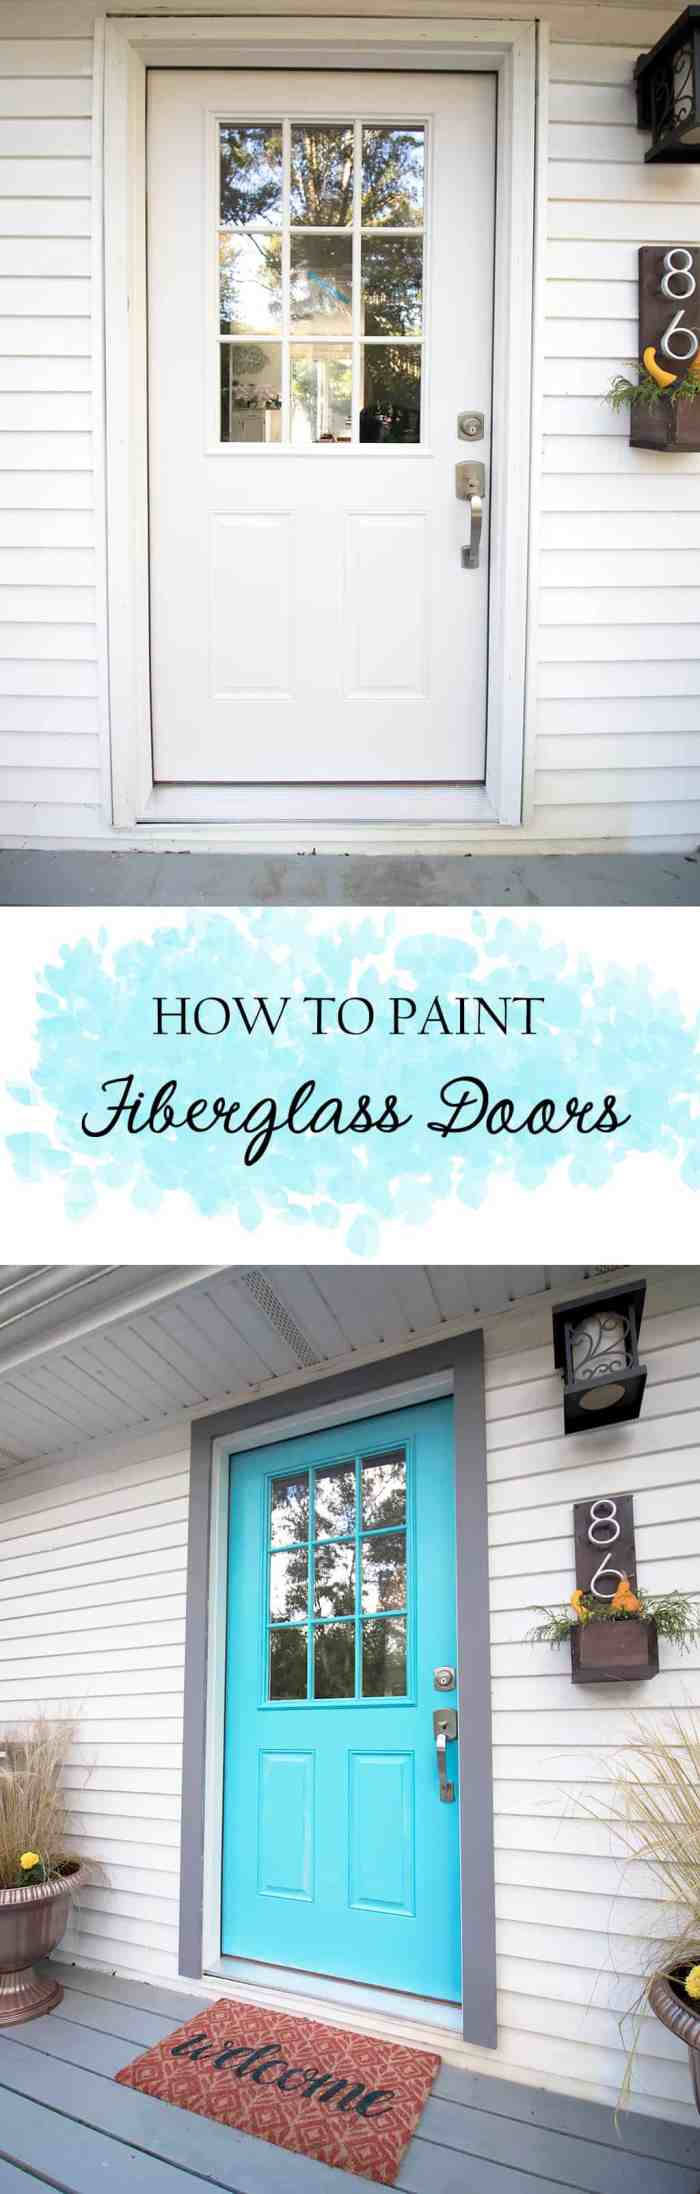 How to Paint Fiberglass Doors